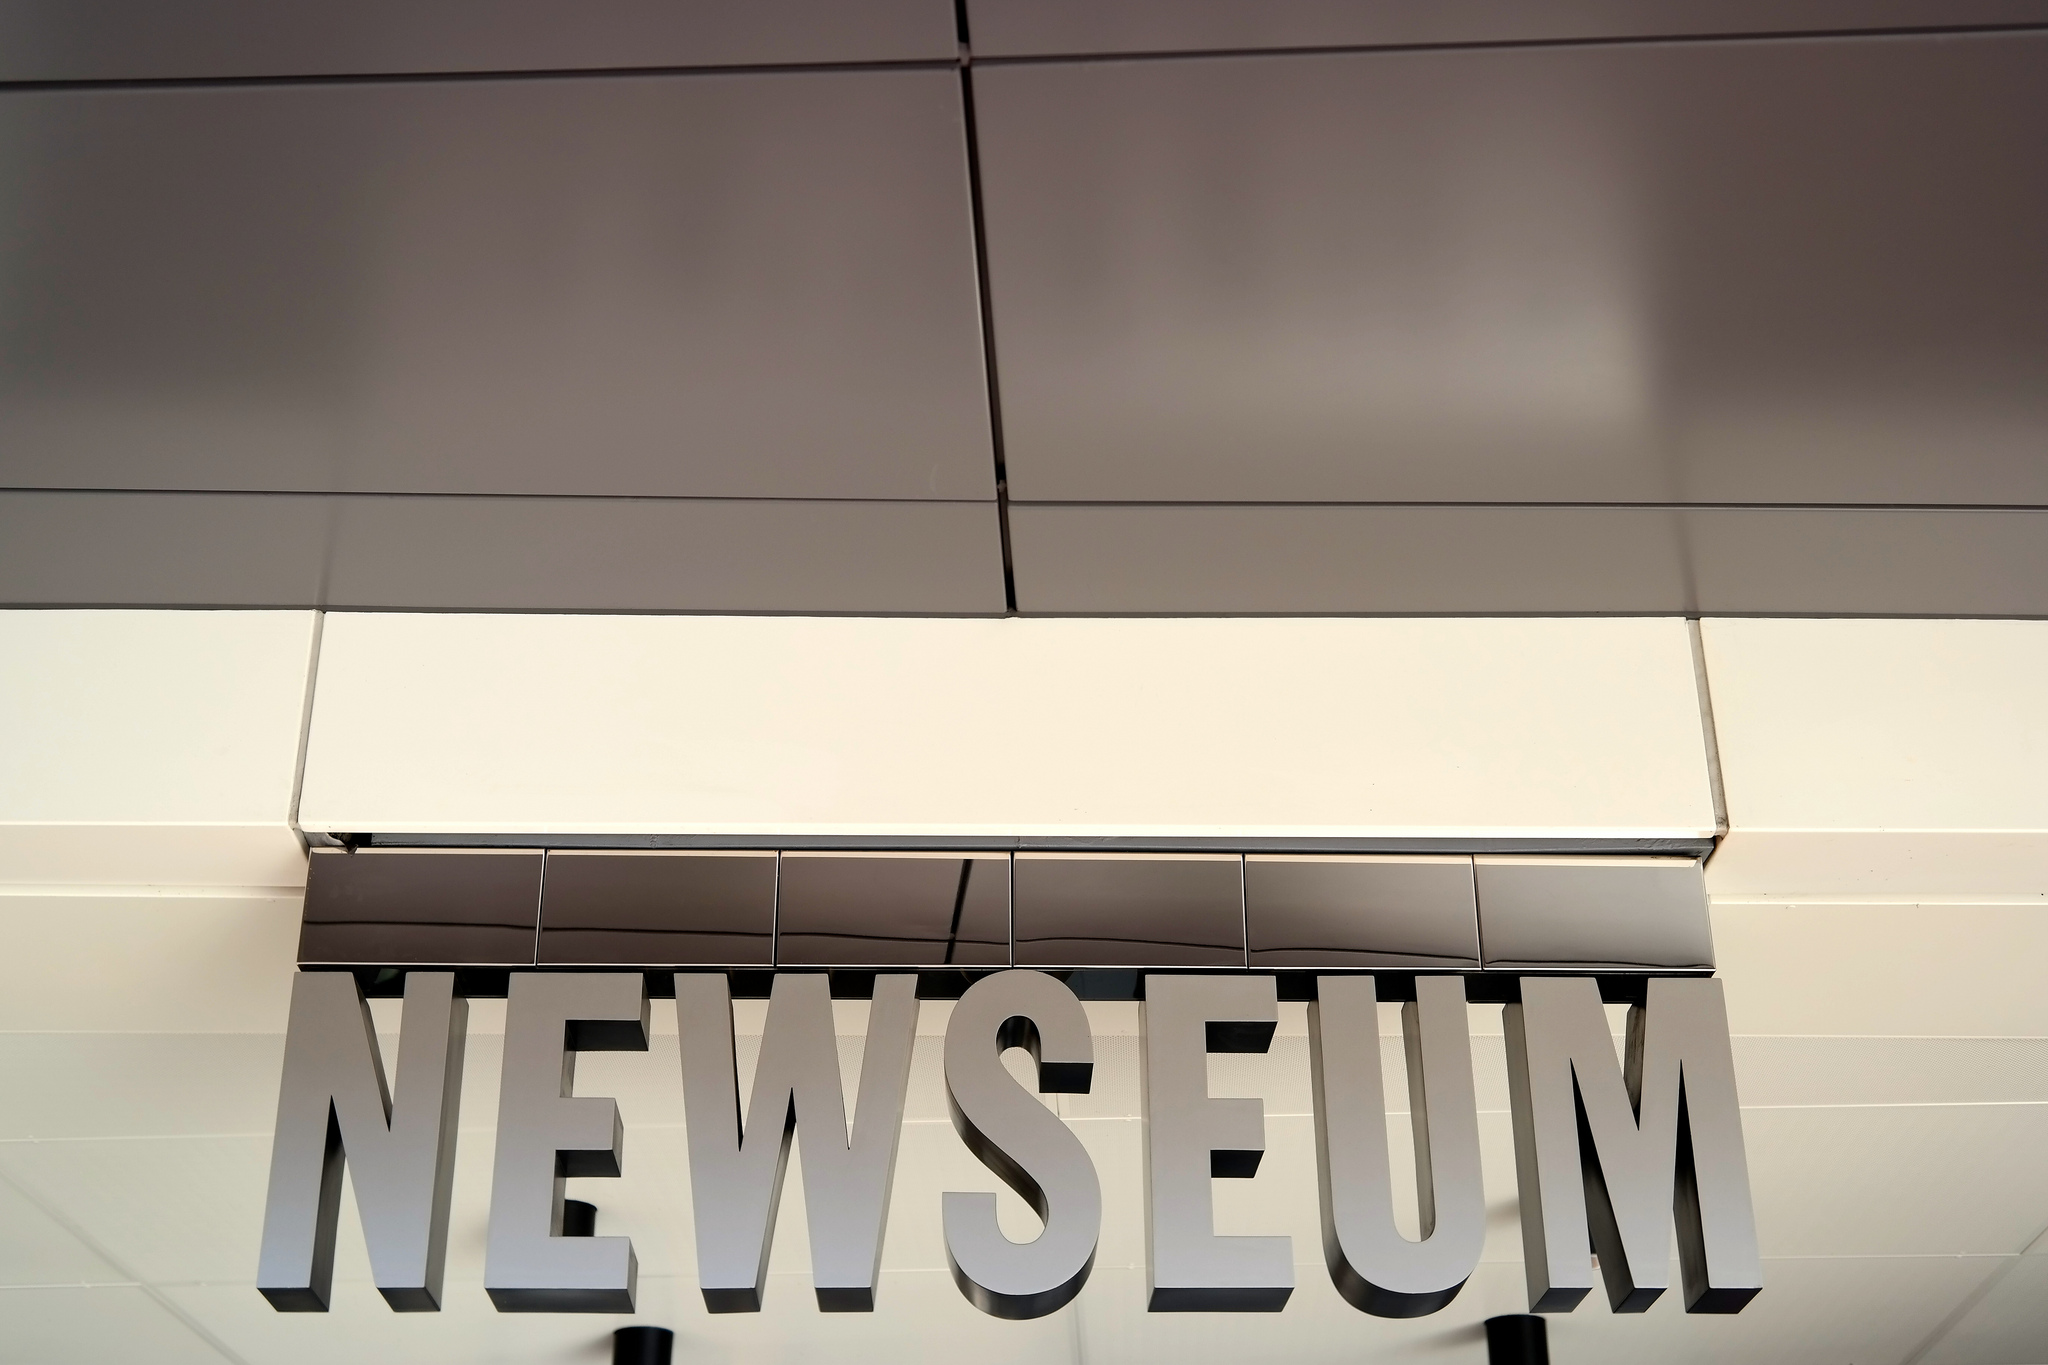 Journalism at the Crossroads: A Visit to the Newseum